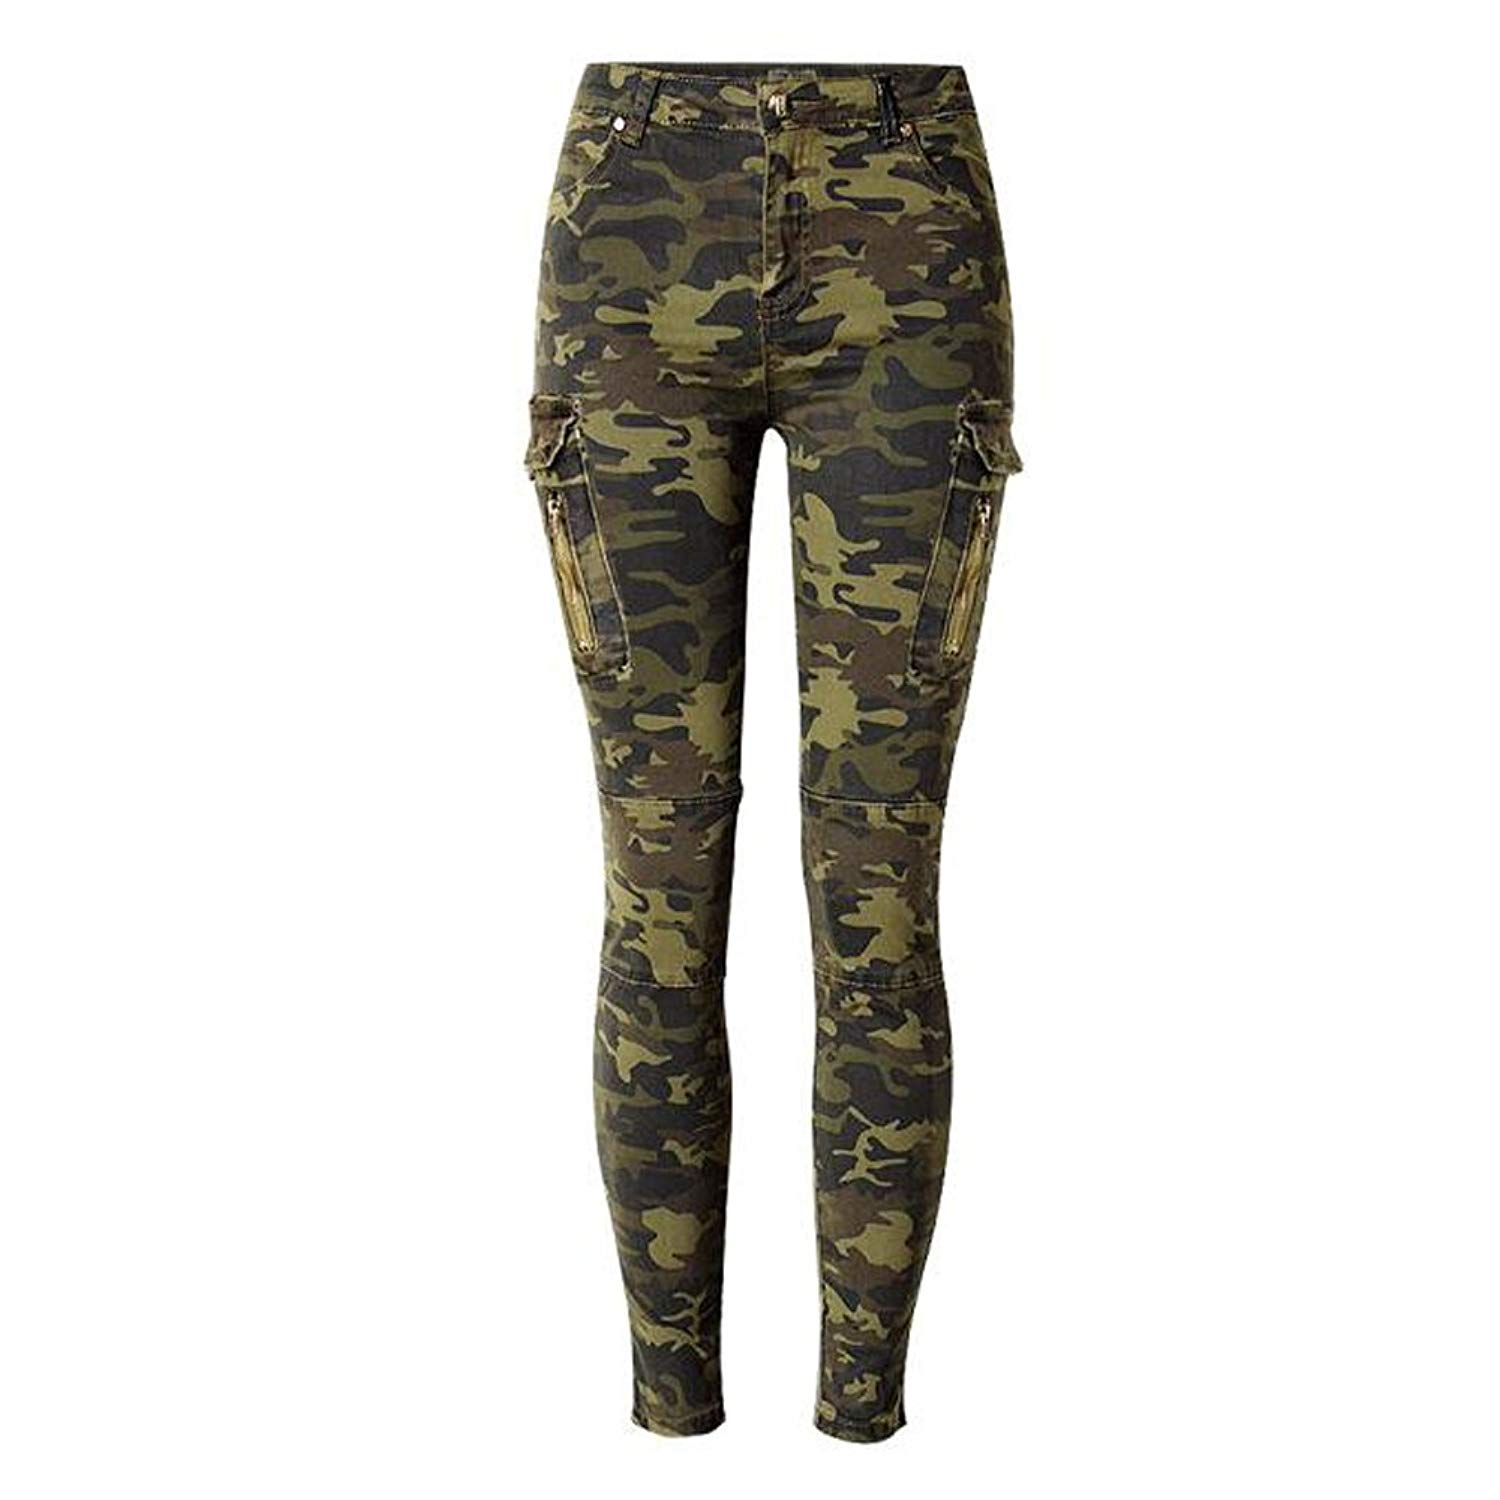 ee529bcf4b6f Get Quotations · Urchart Women Camouflage Denim Spandex Pants Lady Military  Skinny Jeans Trousers Army Green